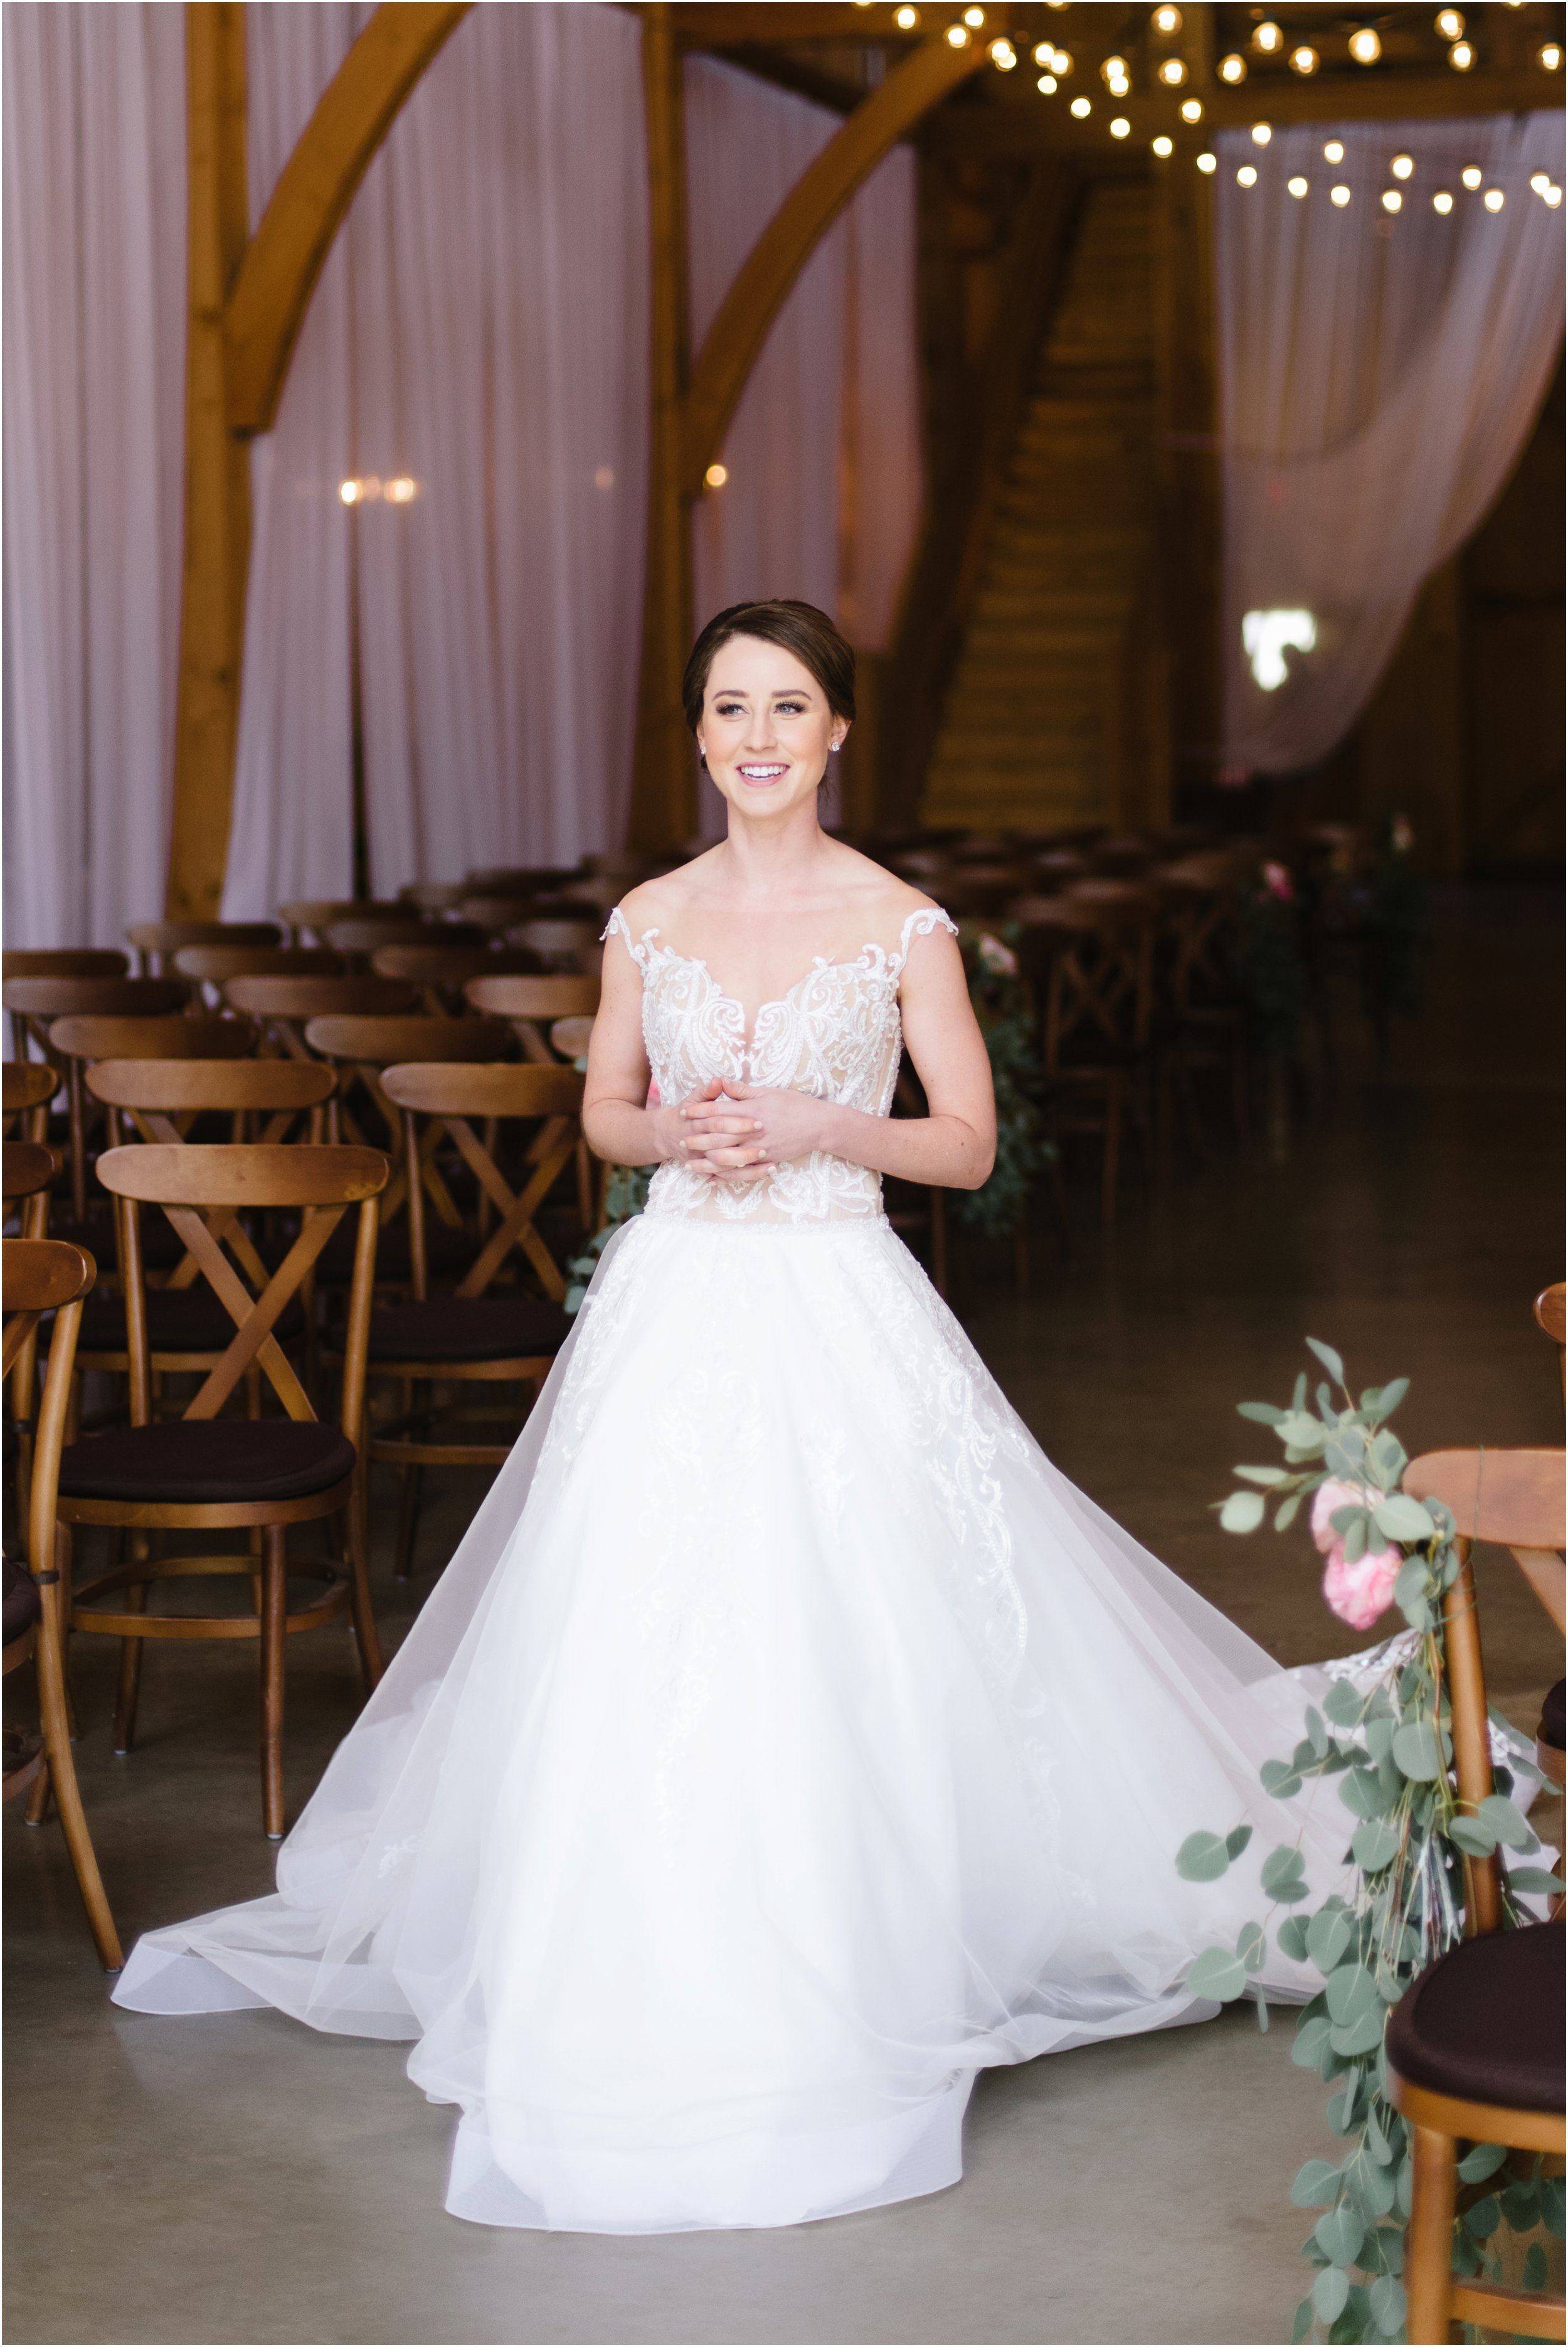 dallasweddingphotographer_fortworthweddingphotographer_texasweddingphotographer_mattandjulieweddings_whiterocklakewedding_KayleighClay_0005.jpg